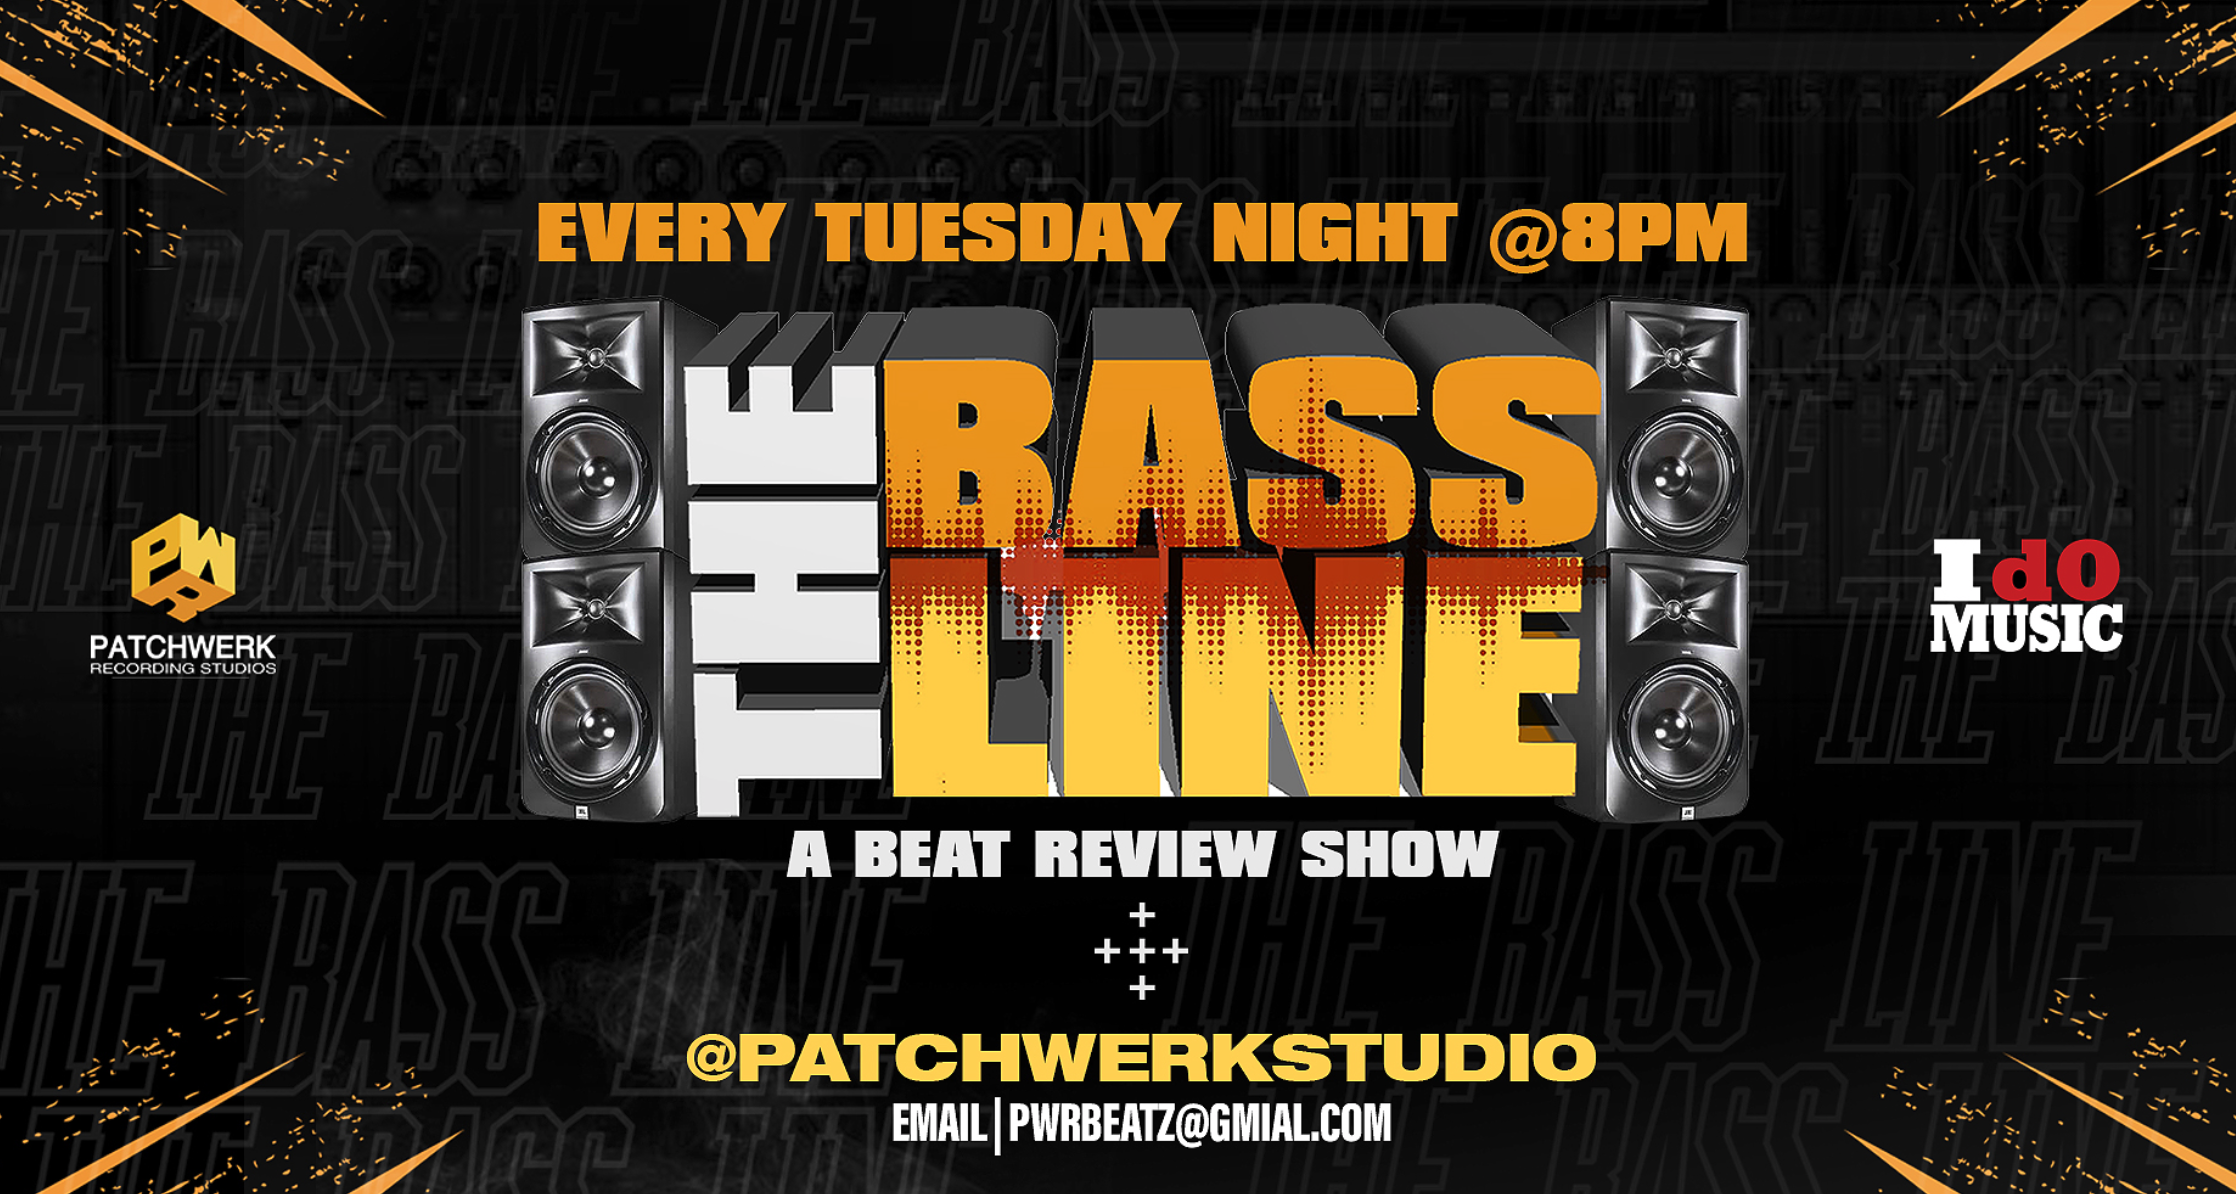 Patchwerk Presents: The Bassline Online Producer Review Show 3/3/20